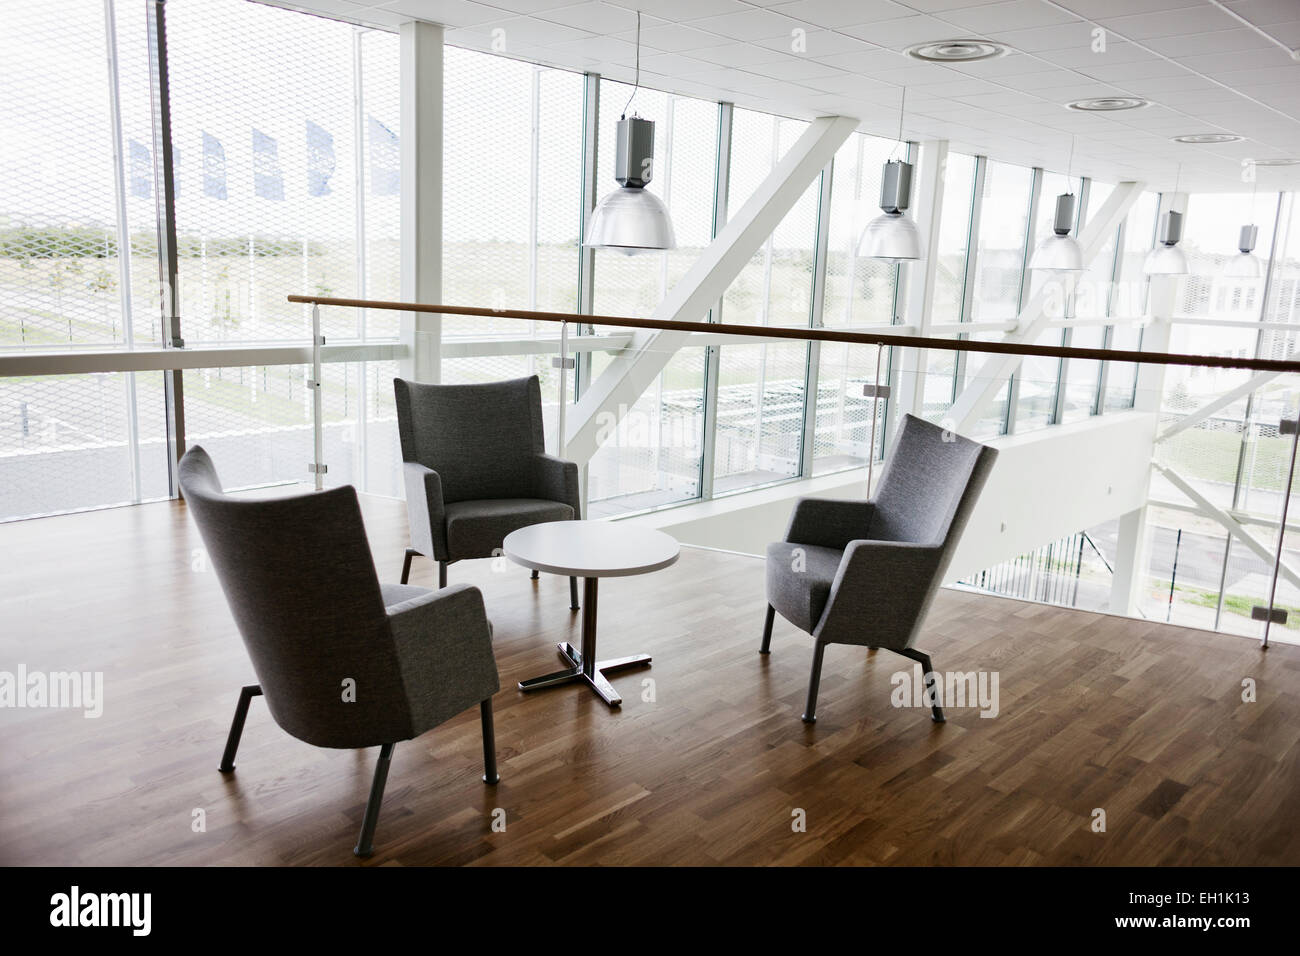 Empty chairs and table in contemporary office - Stock Image